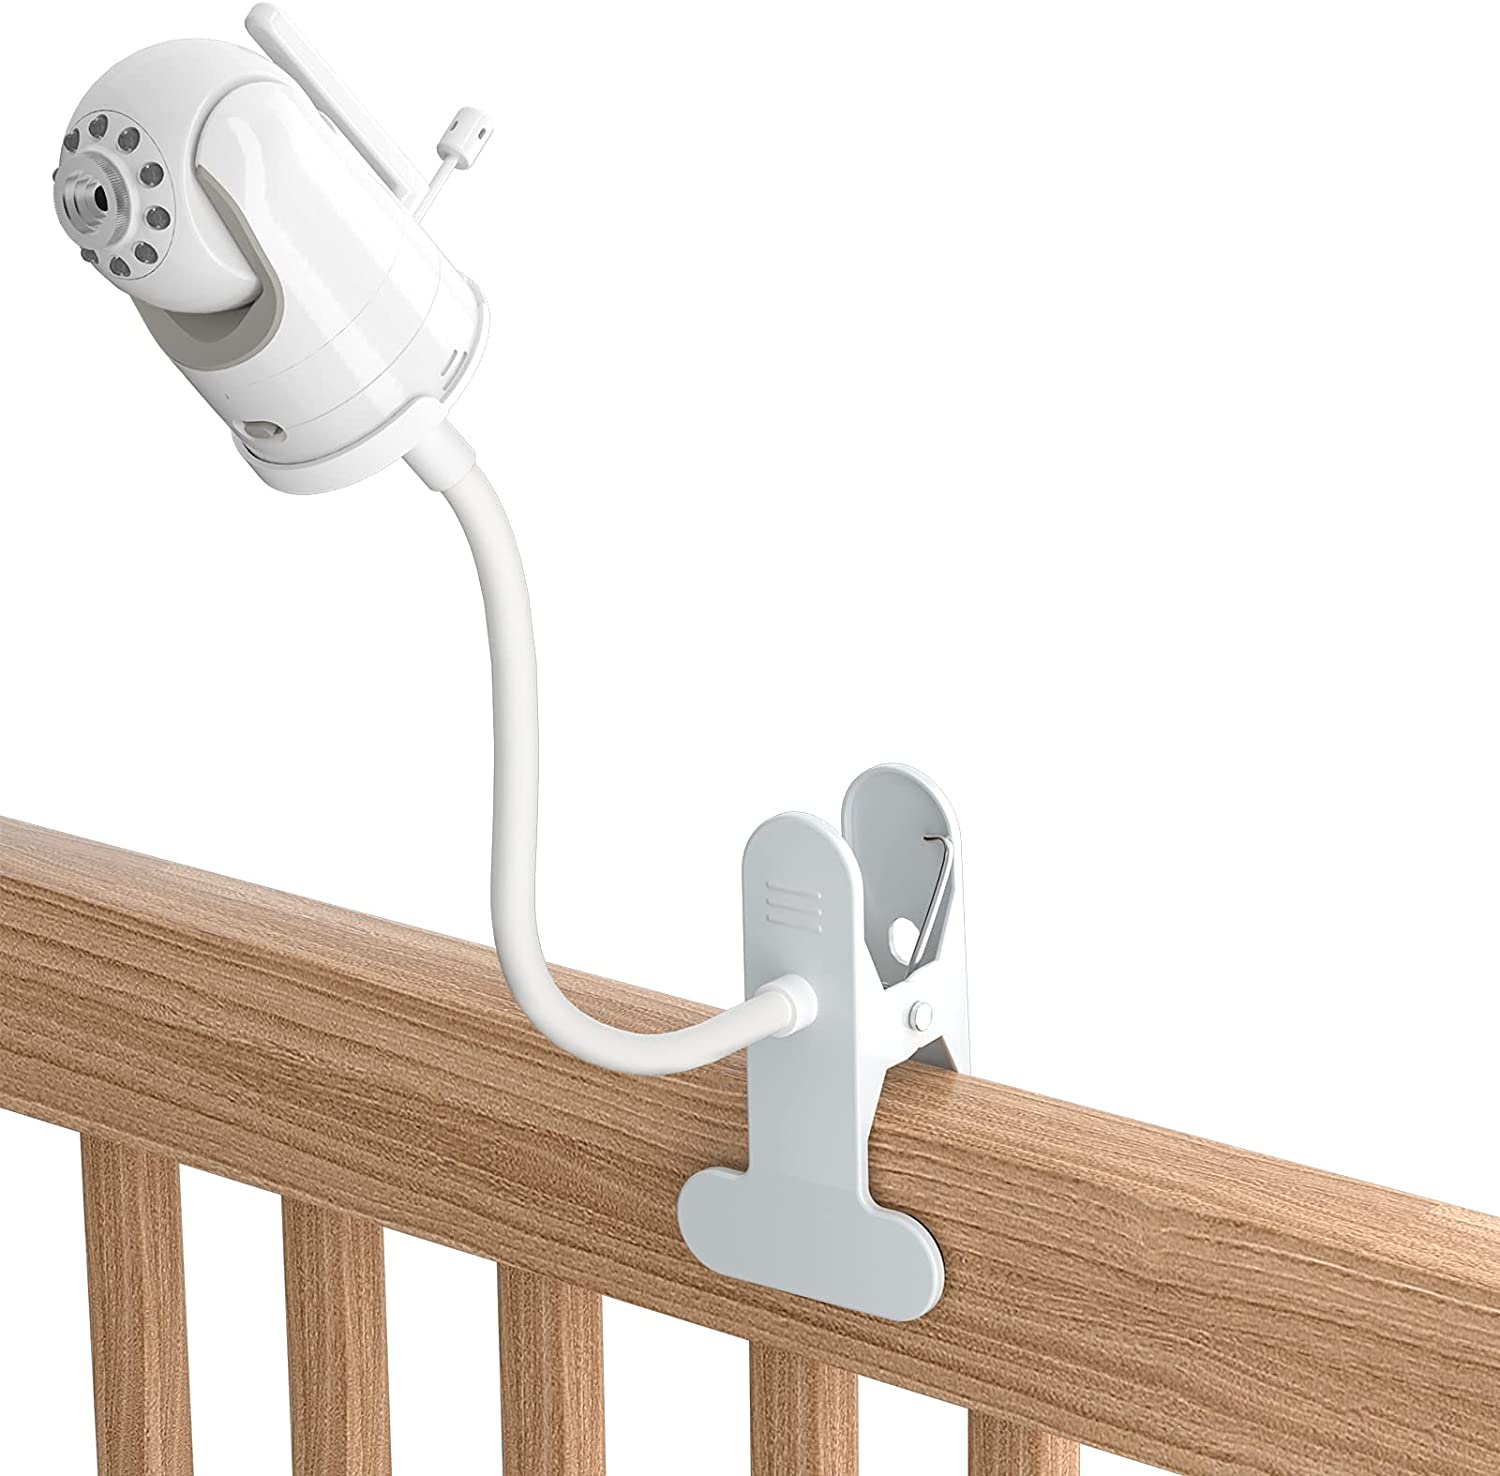 TIUIHU Baby Monitor Clip Mount for Infant Optics DXR-8 Baby Monitor/PRO/Infant Optics Add-On Camera- Twist Versatile Mounting Kit for DXR-8 Baby Monitor